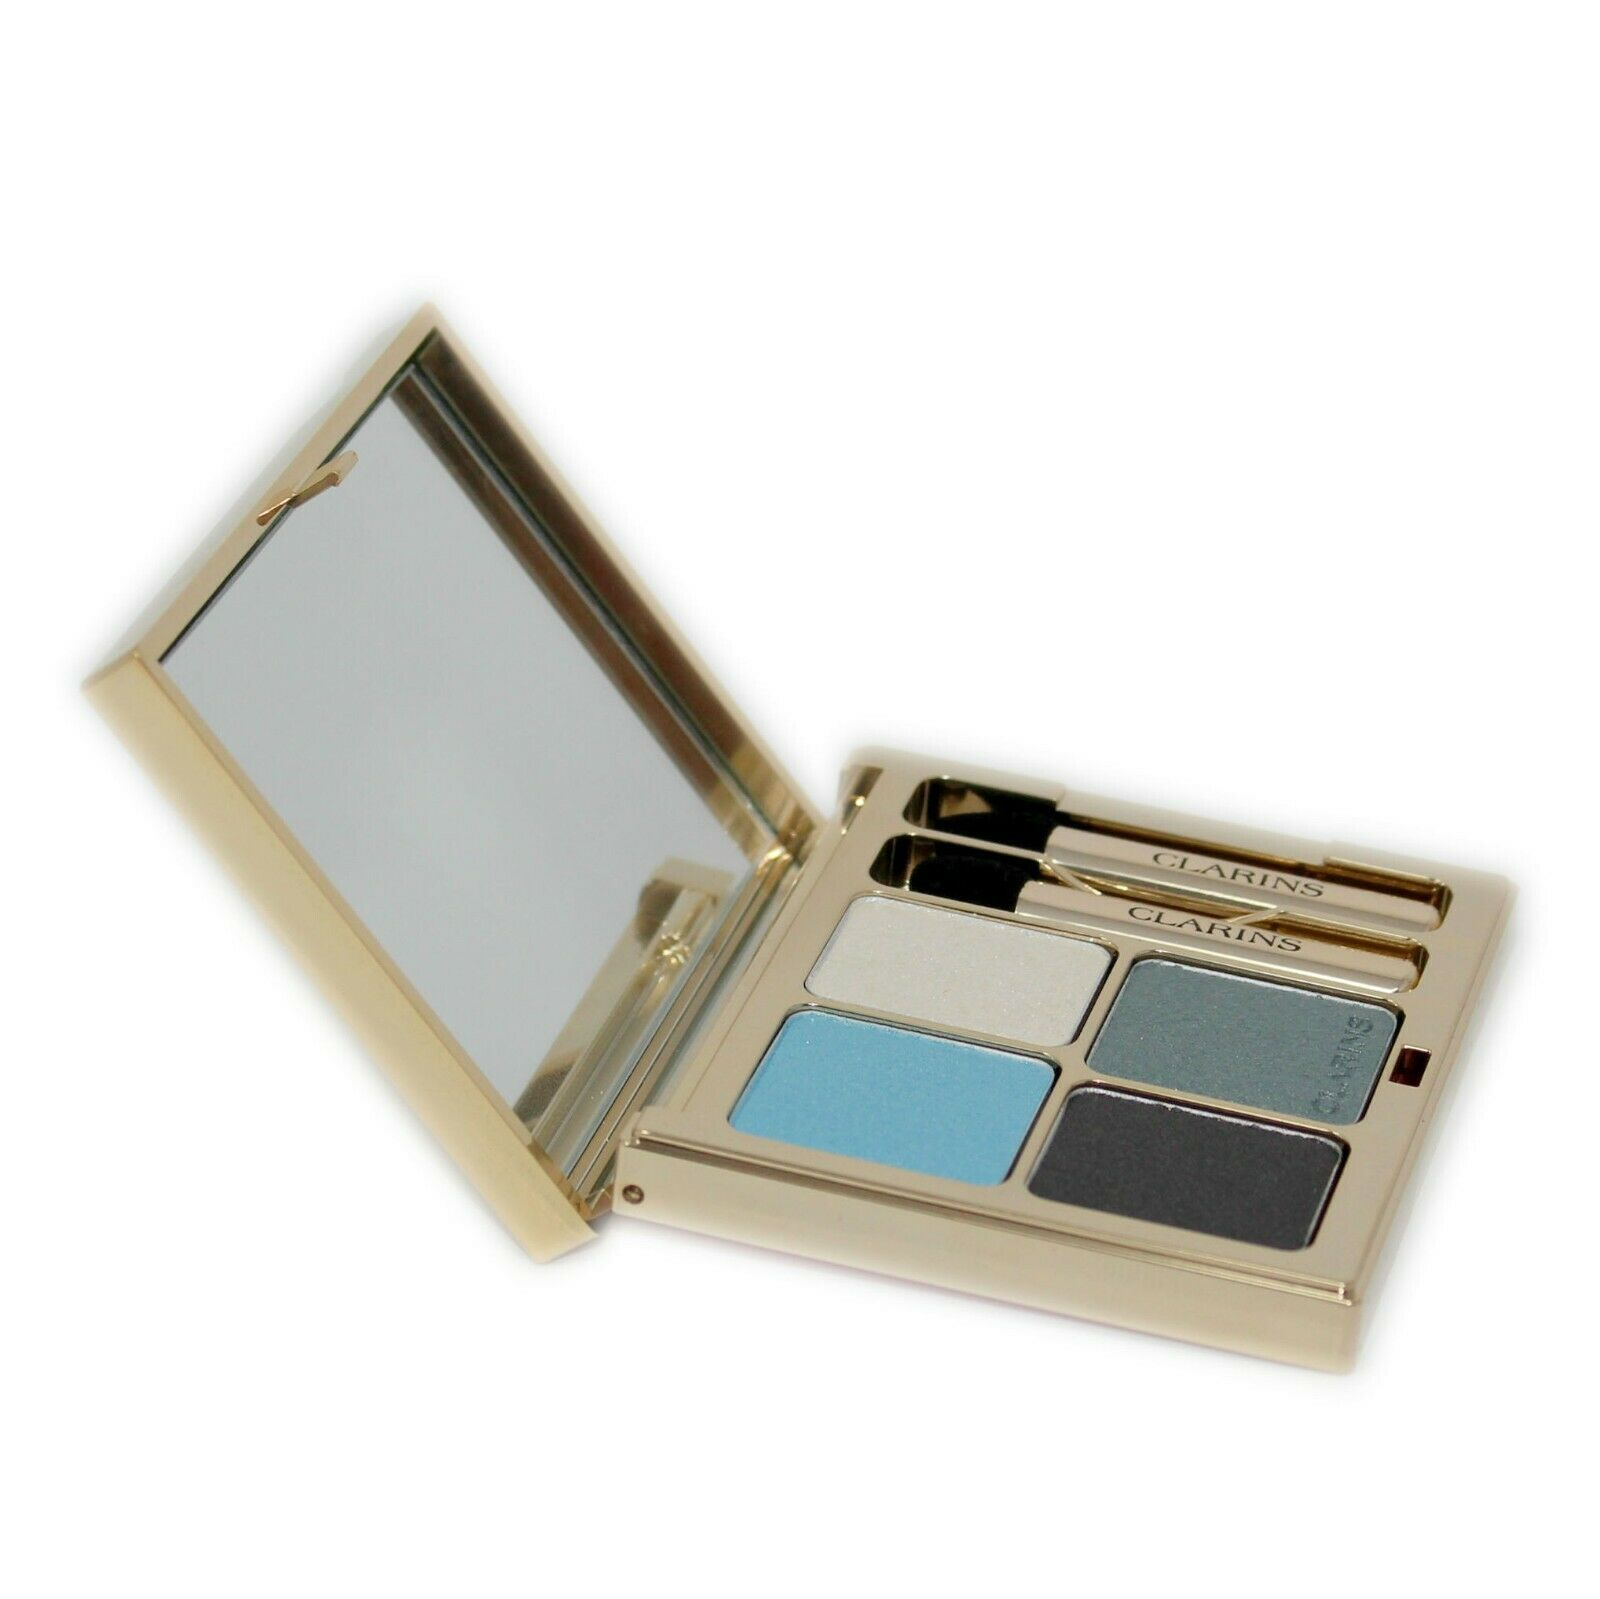 Primary image for CLARINS OMBRE MINERALE 4 COULEURS EYE QUARTET MINERAL PALETTE 5.8G #08-BLUE SKY